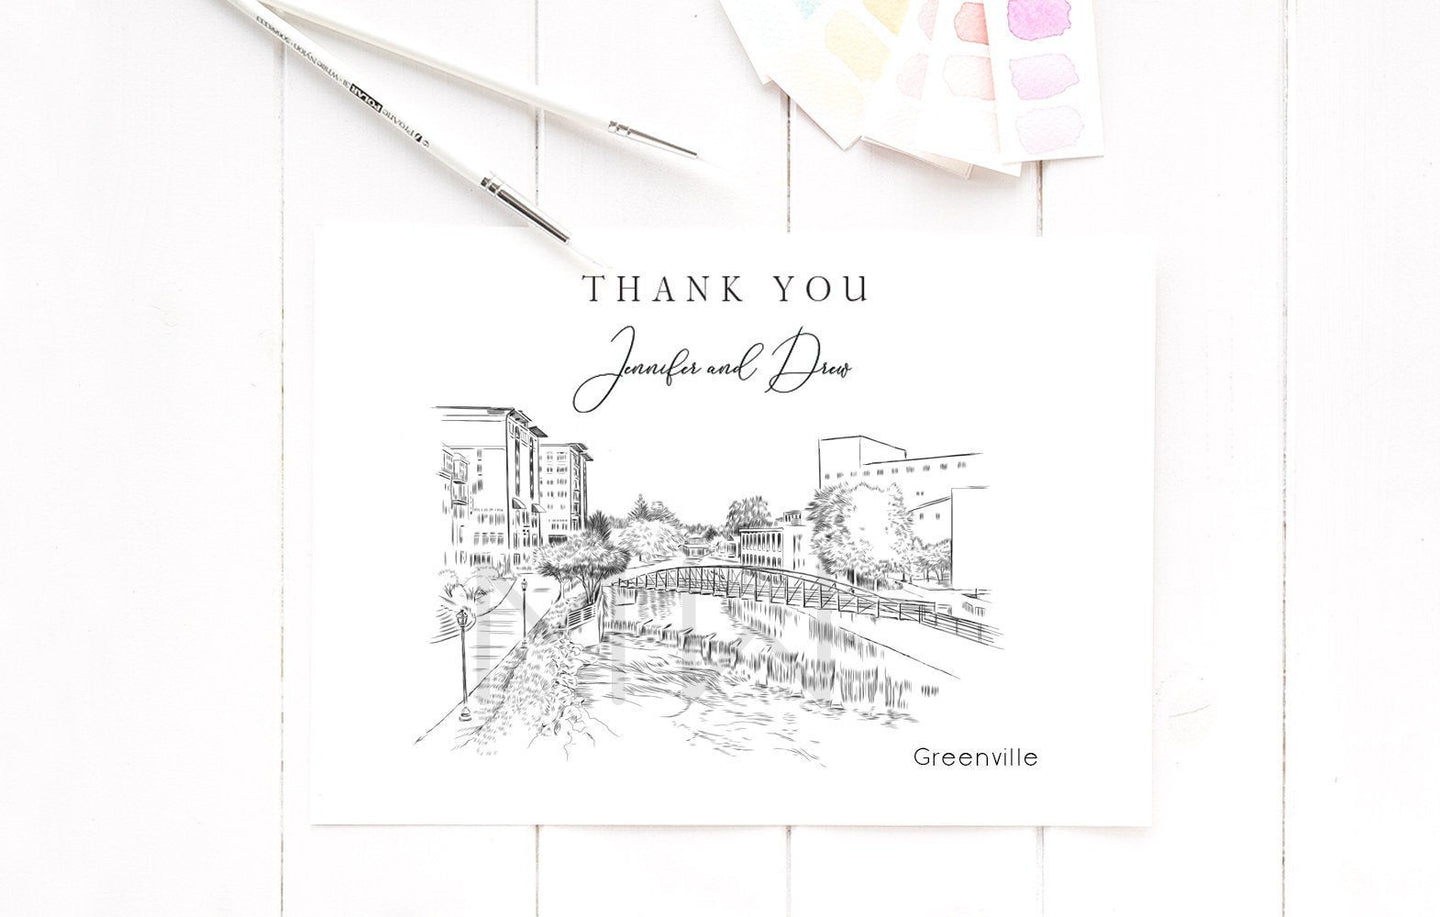 Greenville Skyline Thank You Cards, Personal Note Cards, Bridal Shower Thank you Card Set, Corporate Thank you Cards (set of 25 cards)